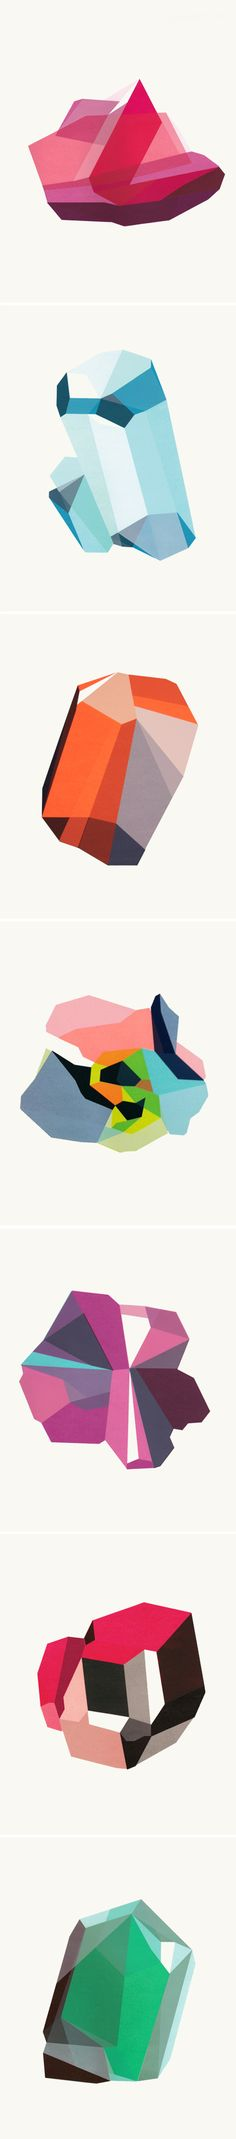 "like like like ""birthstones"" ... hand-pulled screen prints by elisa werbler"